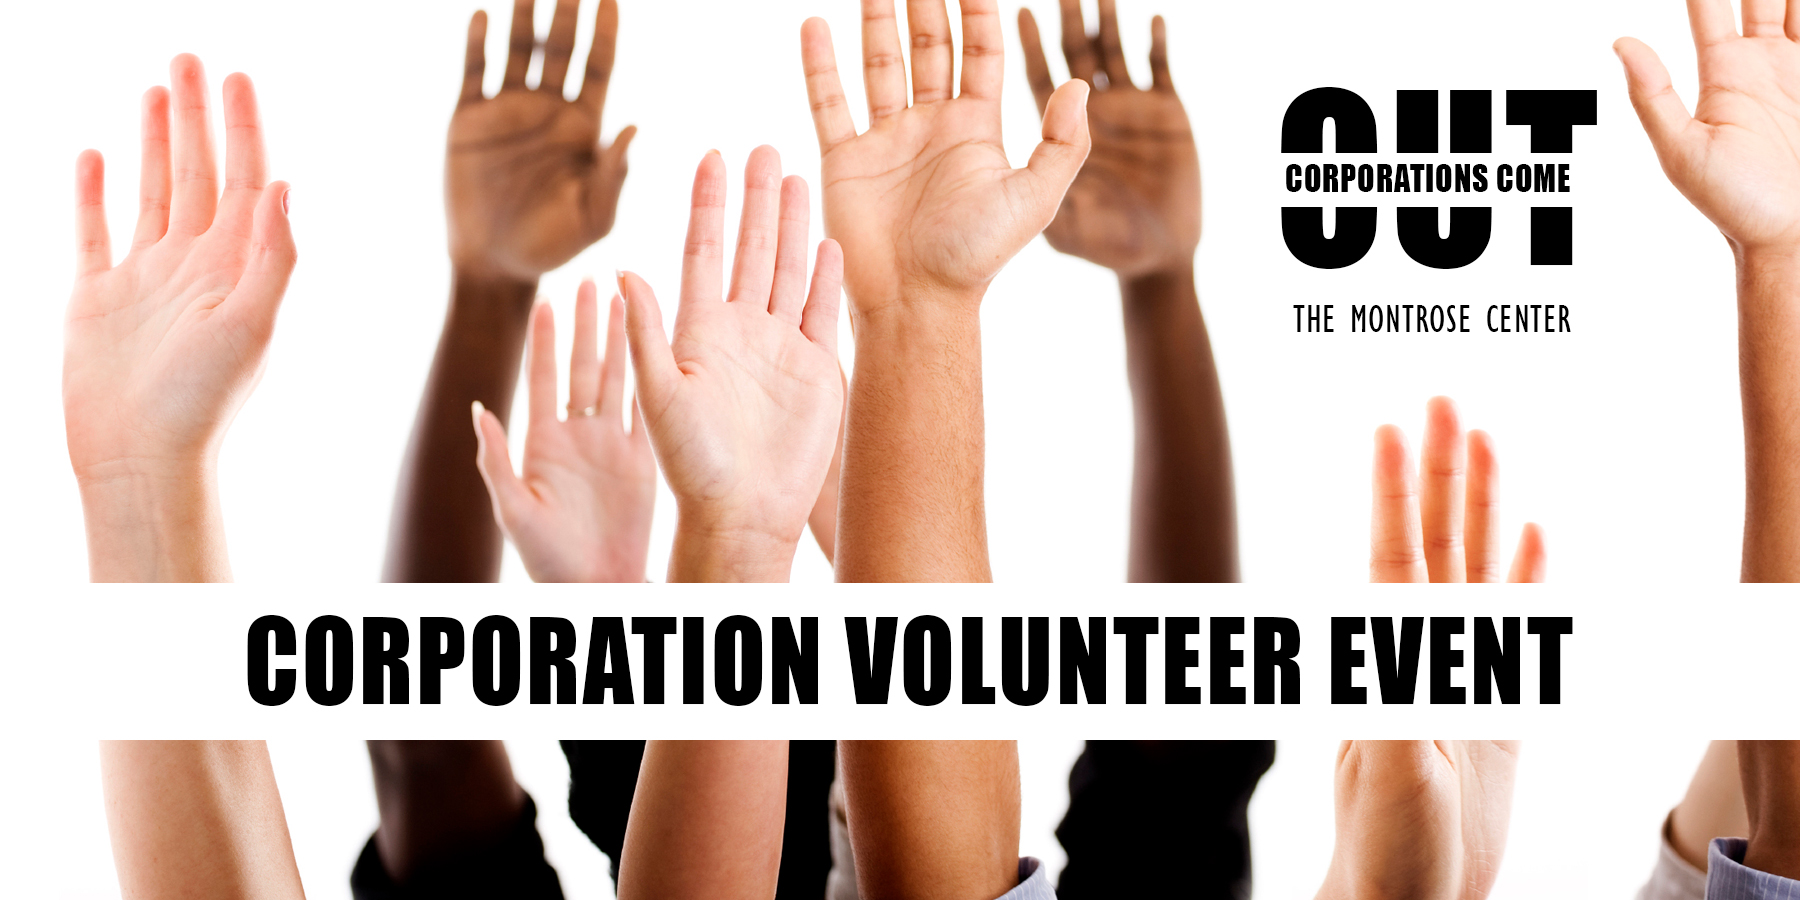 Corportaions-Come-Out-WEB-SCROLL-_-ADDED-VOLUNTEER